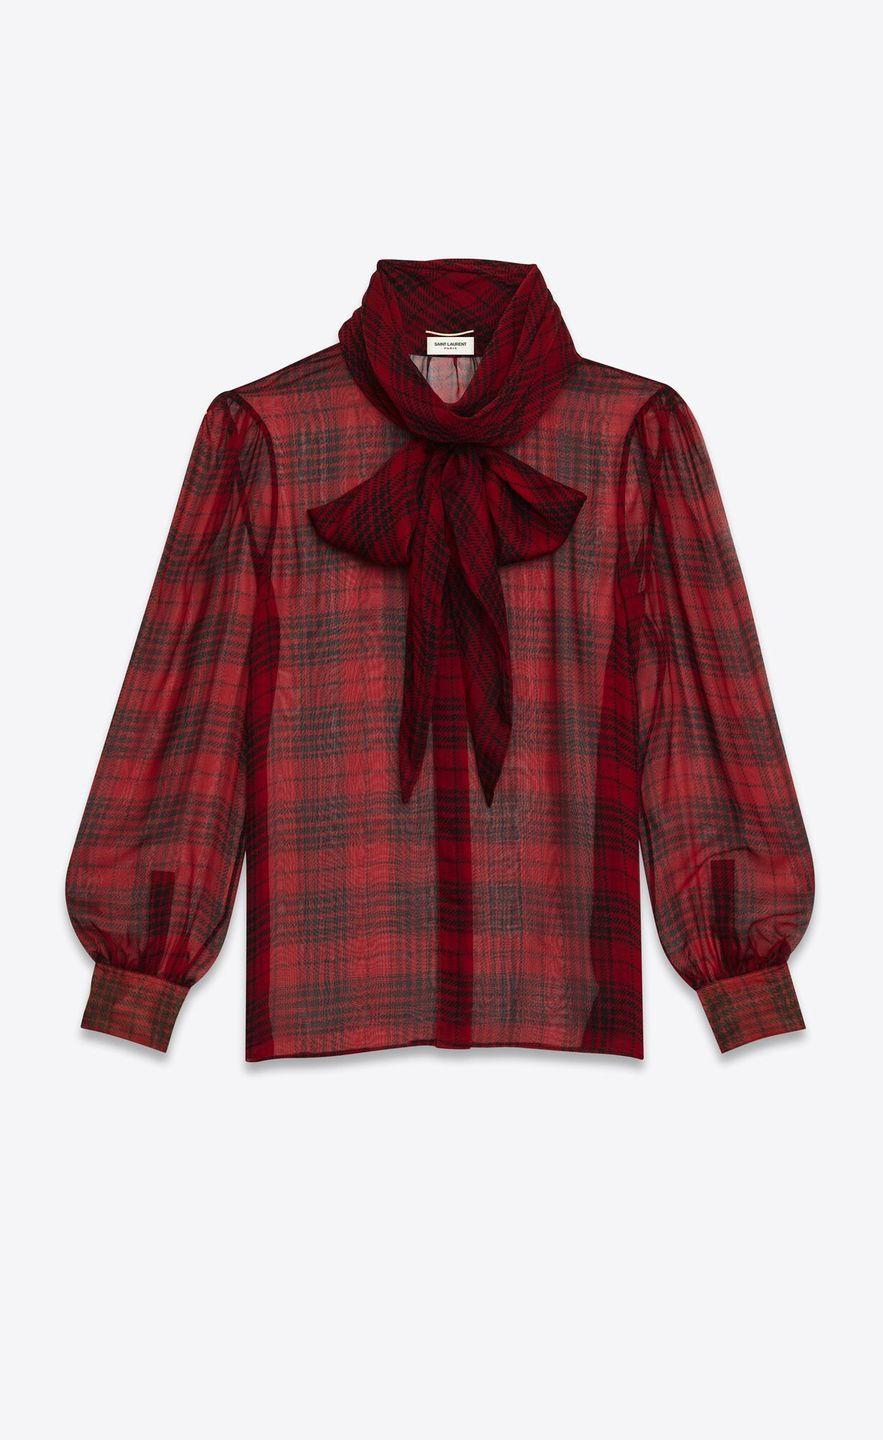 """<p>Silk muslin blouse, price on request, Saint Laurent by Anthony Vaccarello.</p><p><a class=""""link rapid-noclick-resp"""" href=""""https://www.ysl.com/en-en/shirts-and-blouses/lavalliere-neck-blouse-in-prince-of-wales-check-silk-muslin-641585Y8B866041.html"""" rel=""""nofollow noopener"""" target=""""_blank"""" data-ylk=""""slk:SHOP NOW"""">SHOP NOW</a></p>"""